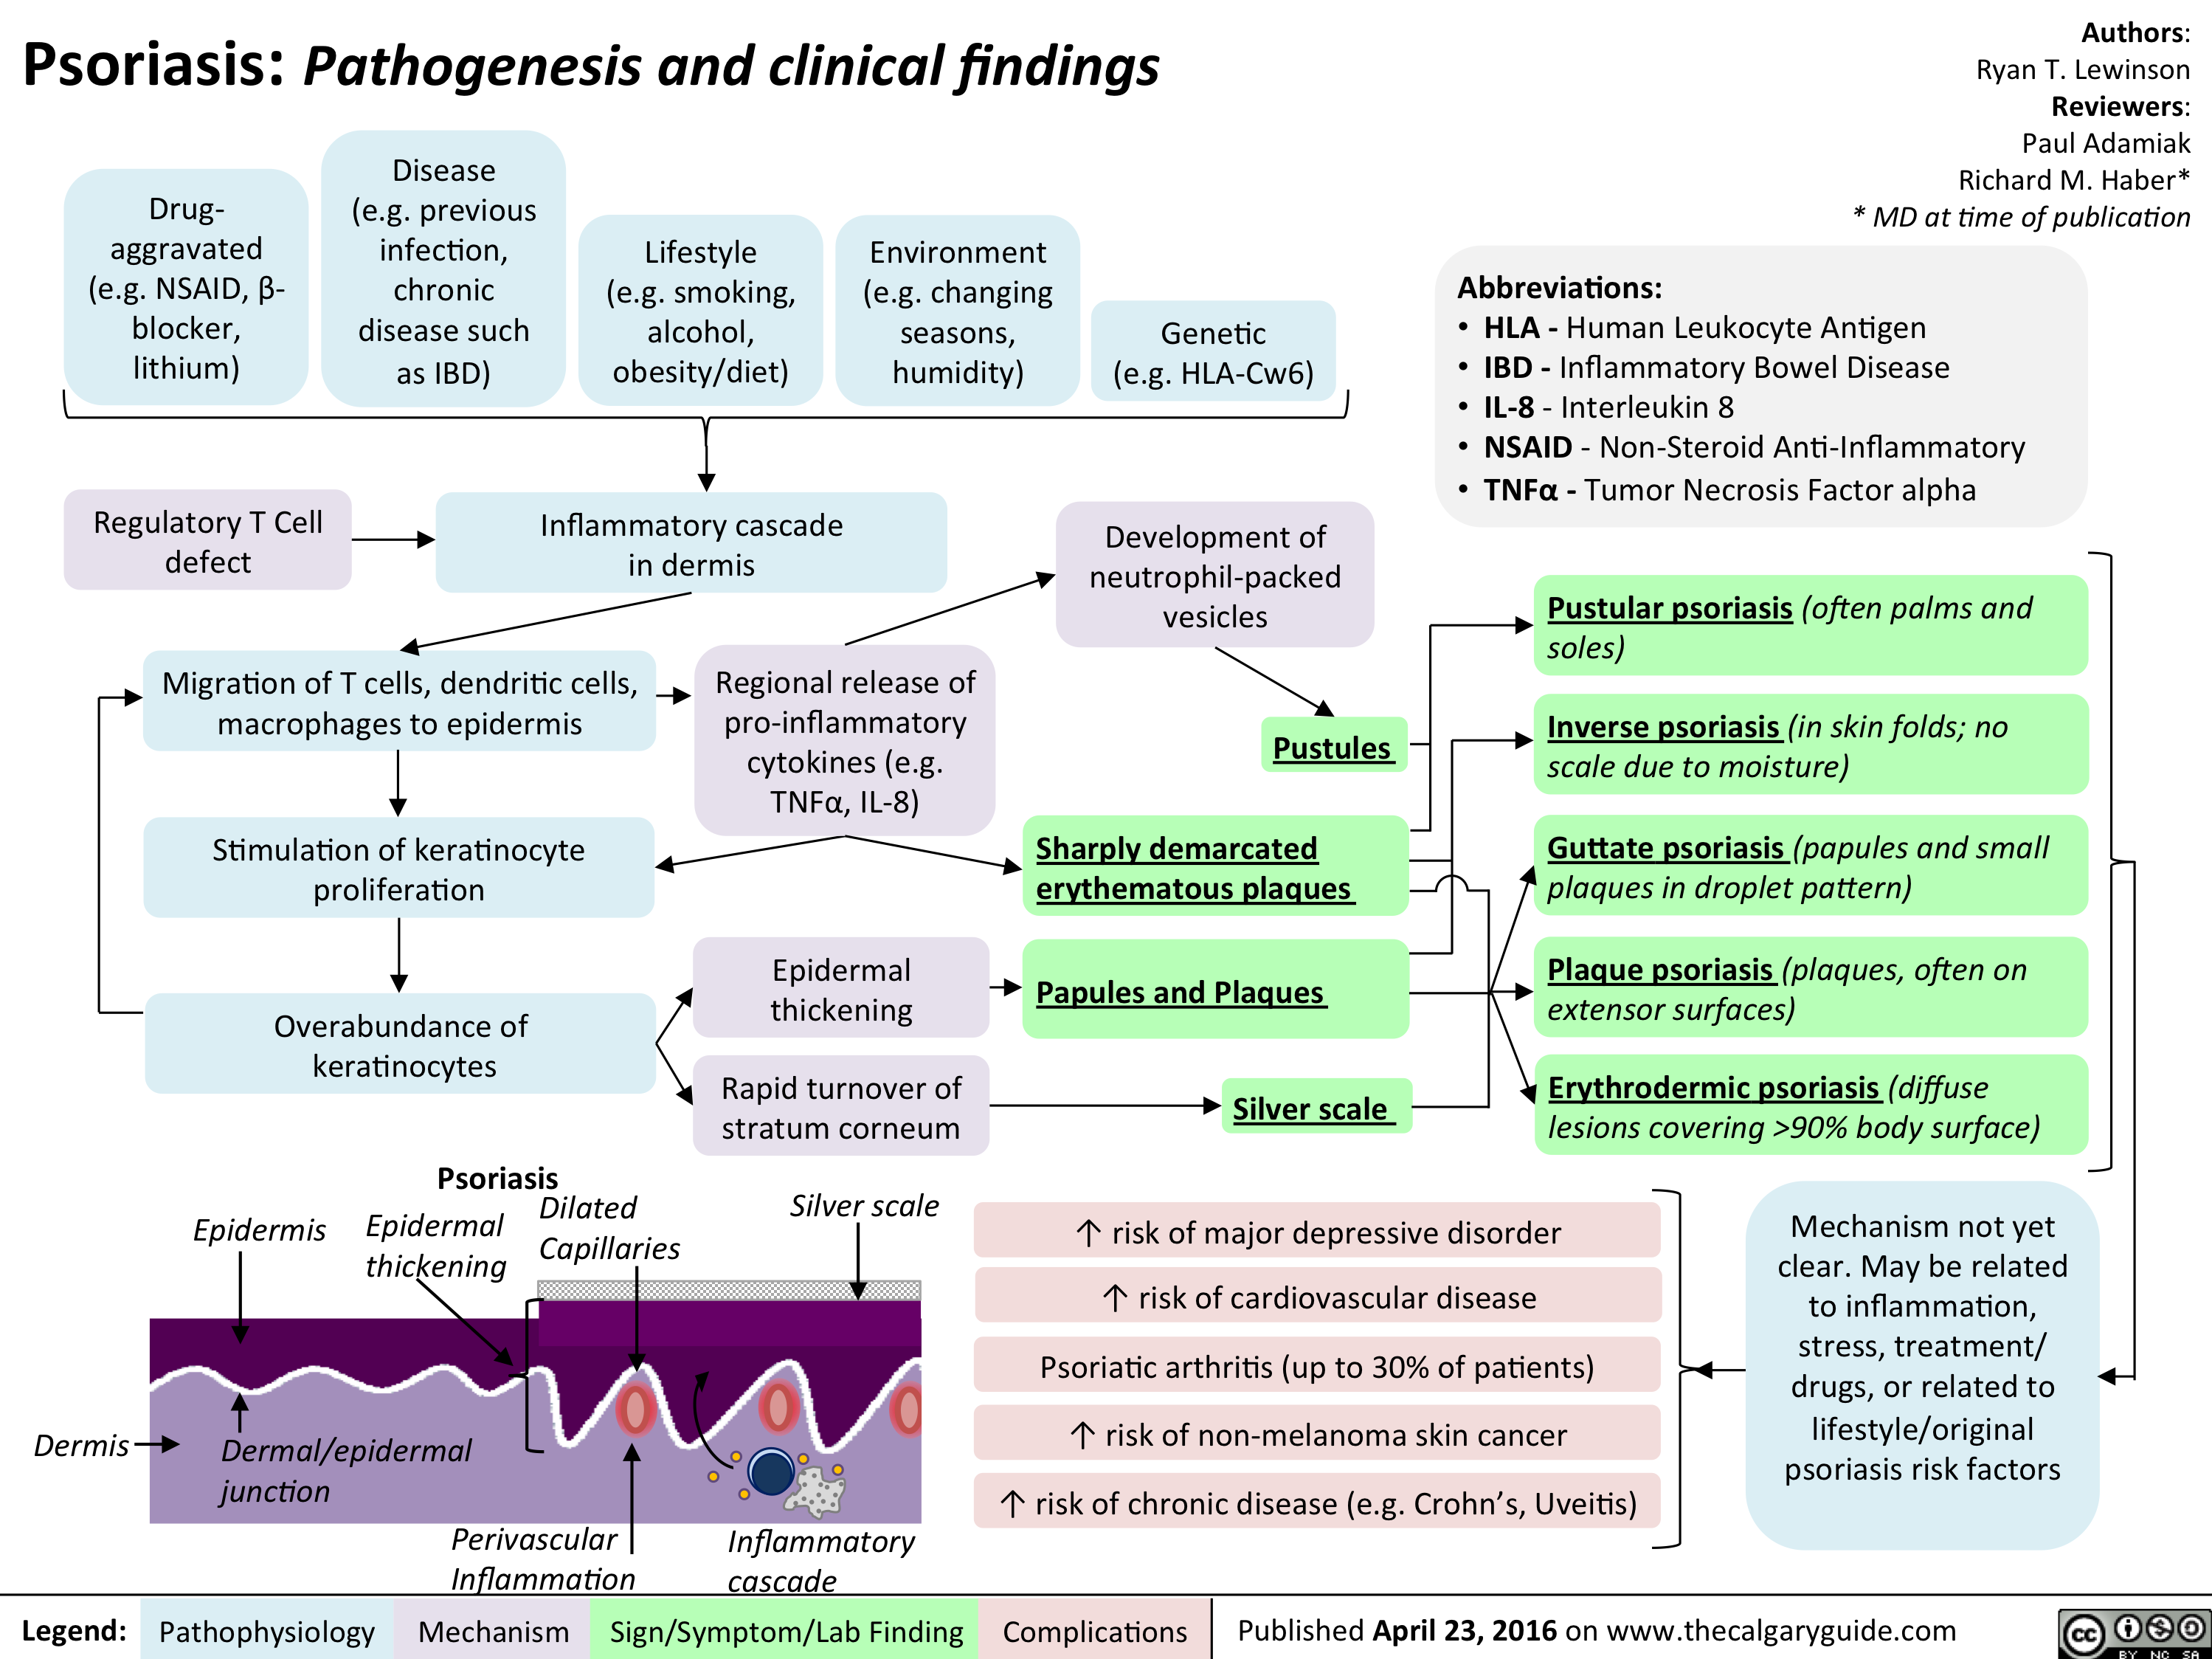 Psoriasis: Pathogenesis and clinical findings